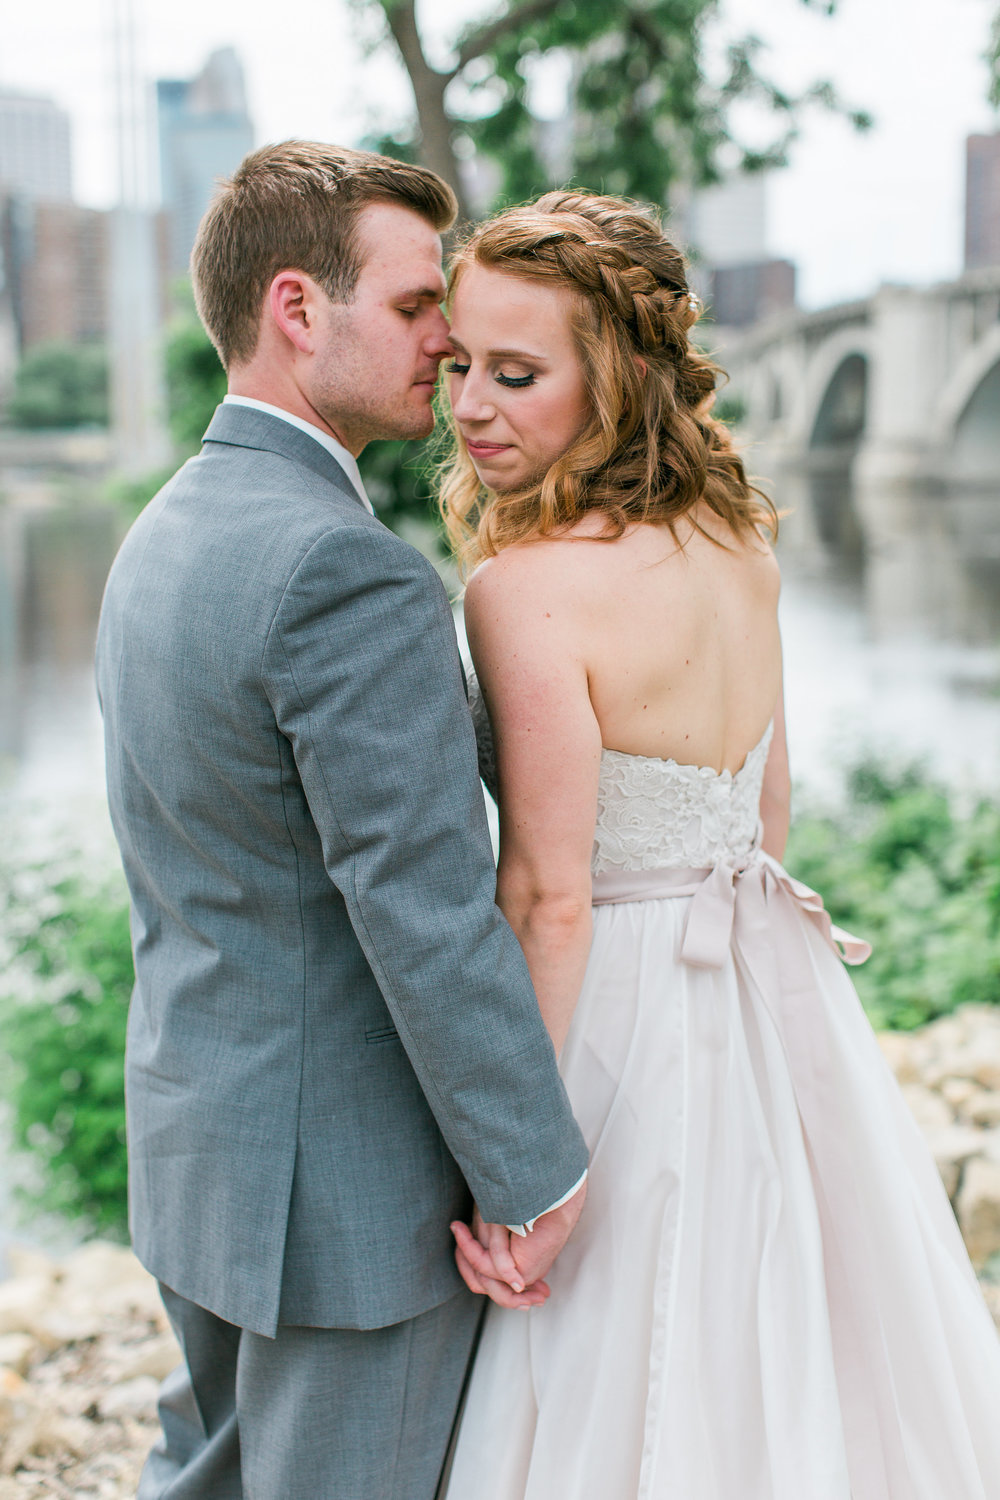 Minneapolis Event Centers bride and groom portrait with Minneapolis bridge and skyline in background Minnesota wedding photography Mallory Kiesow Photography